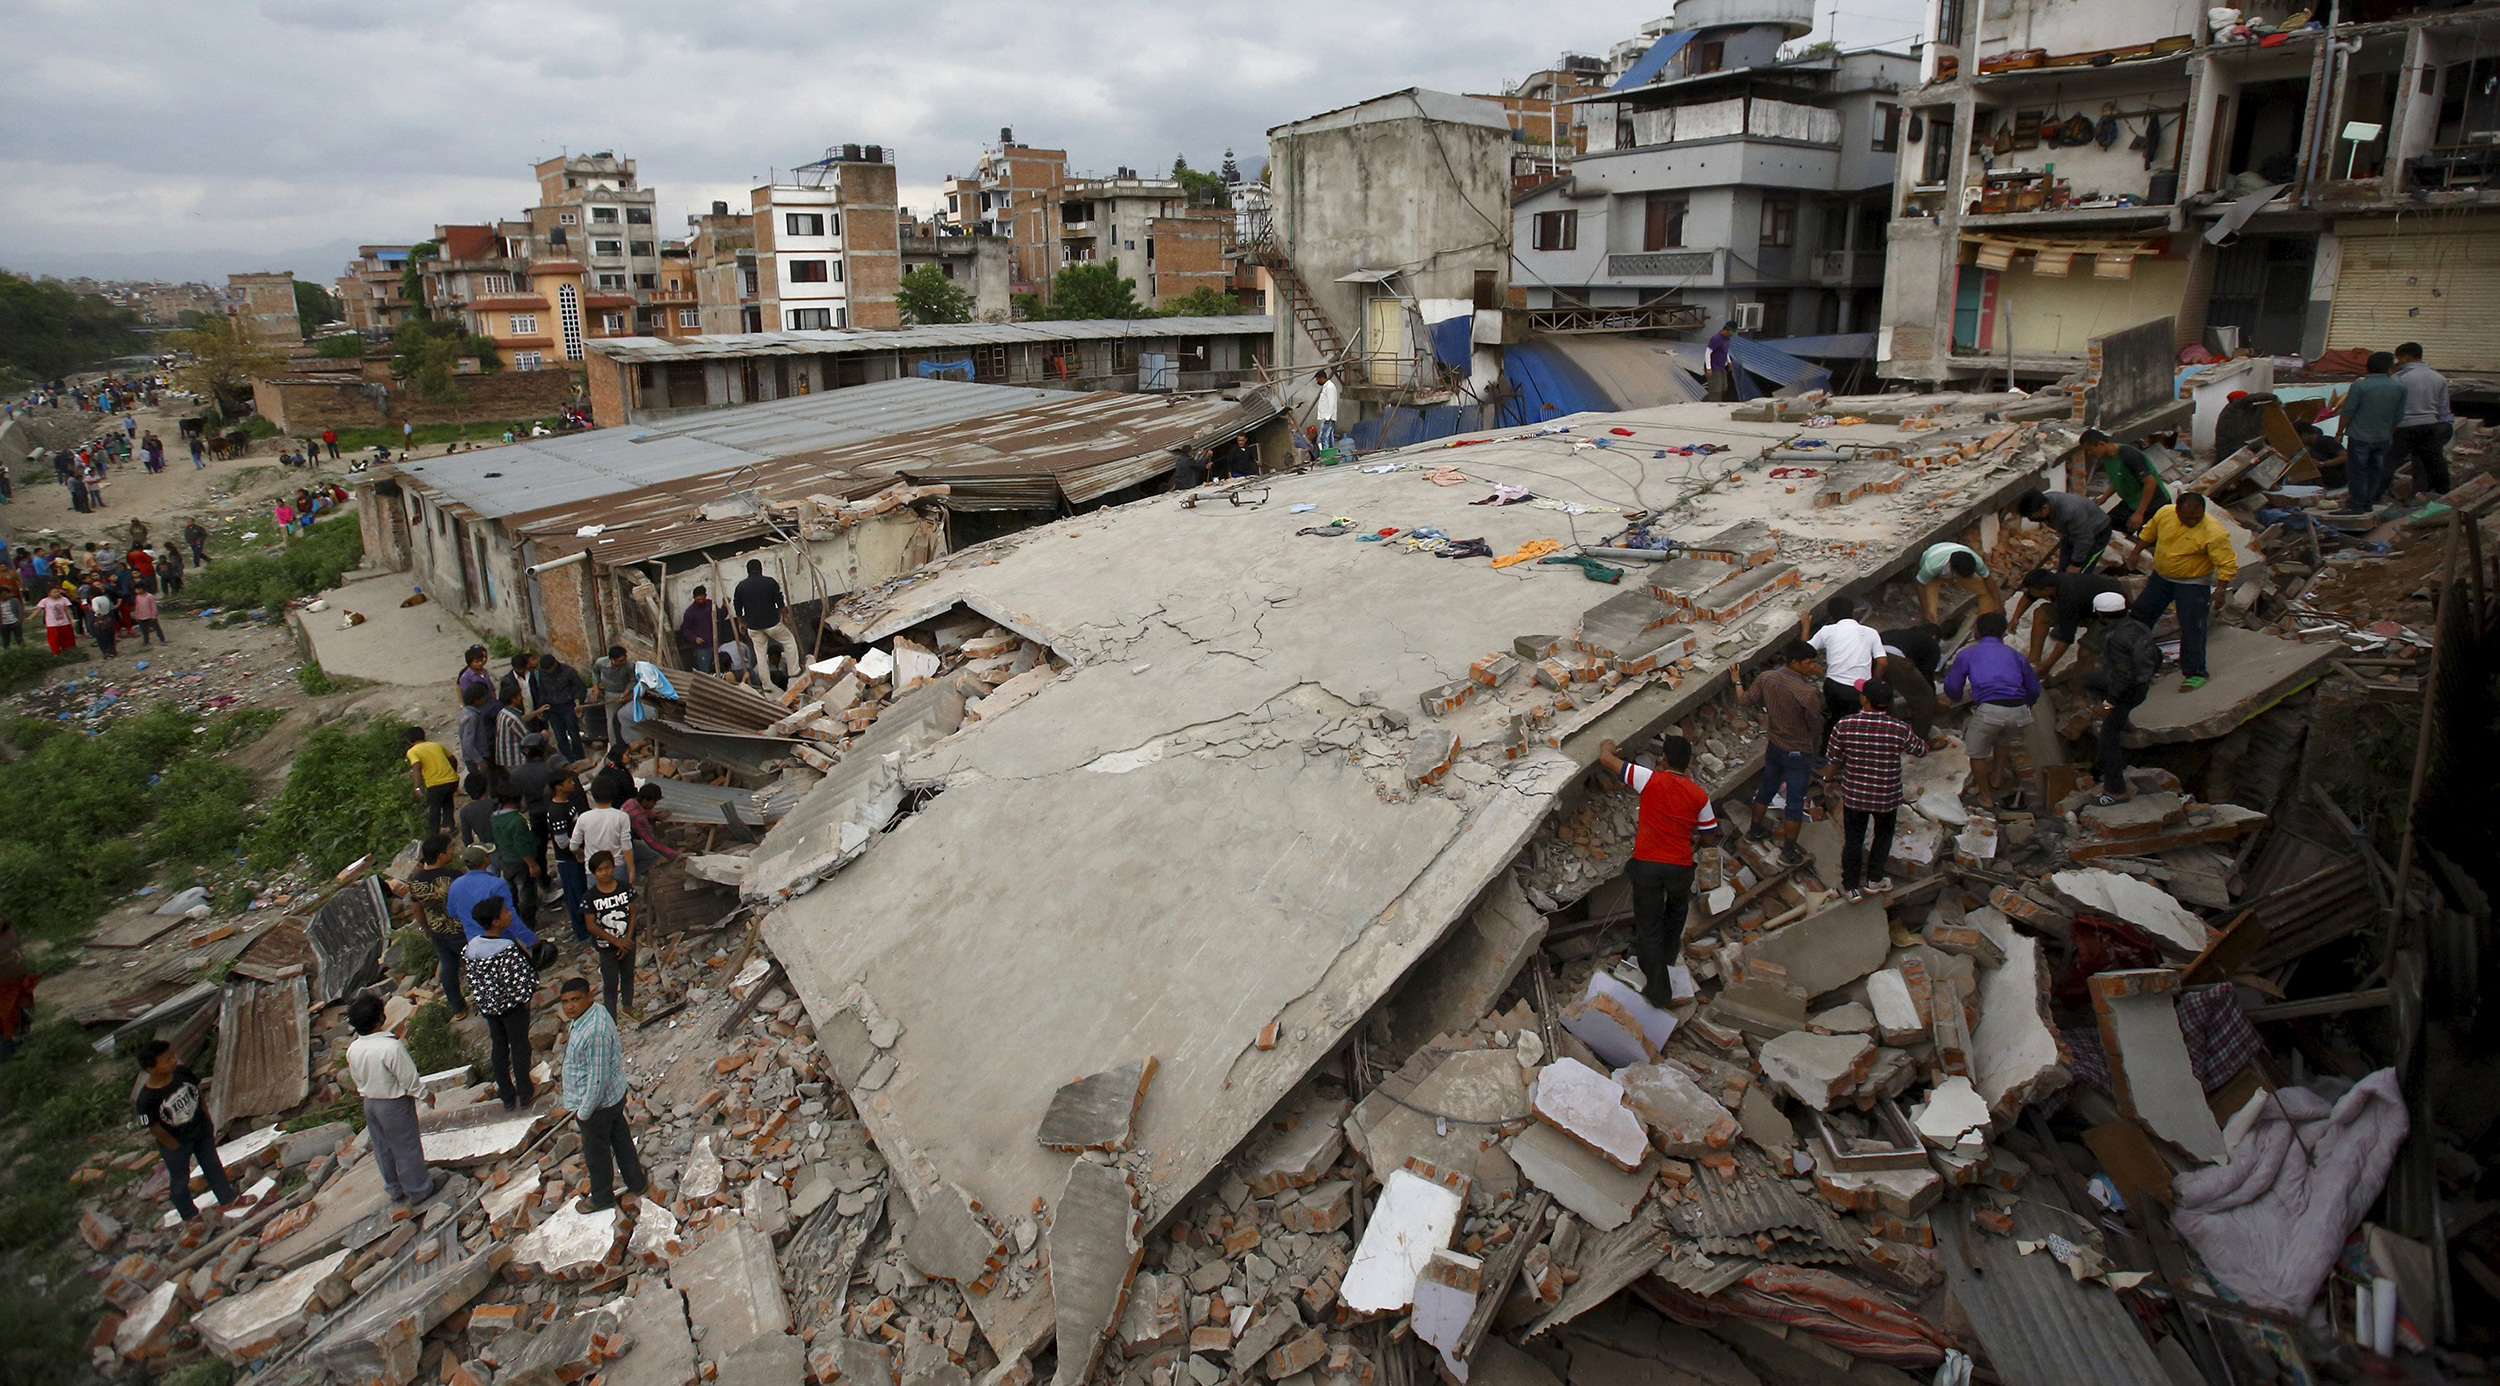 Image: People gather near a collapsed house after major earthquake in Kathmandu